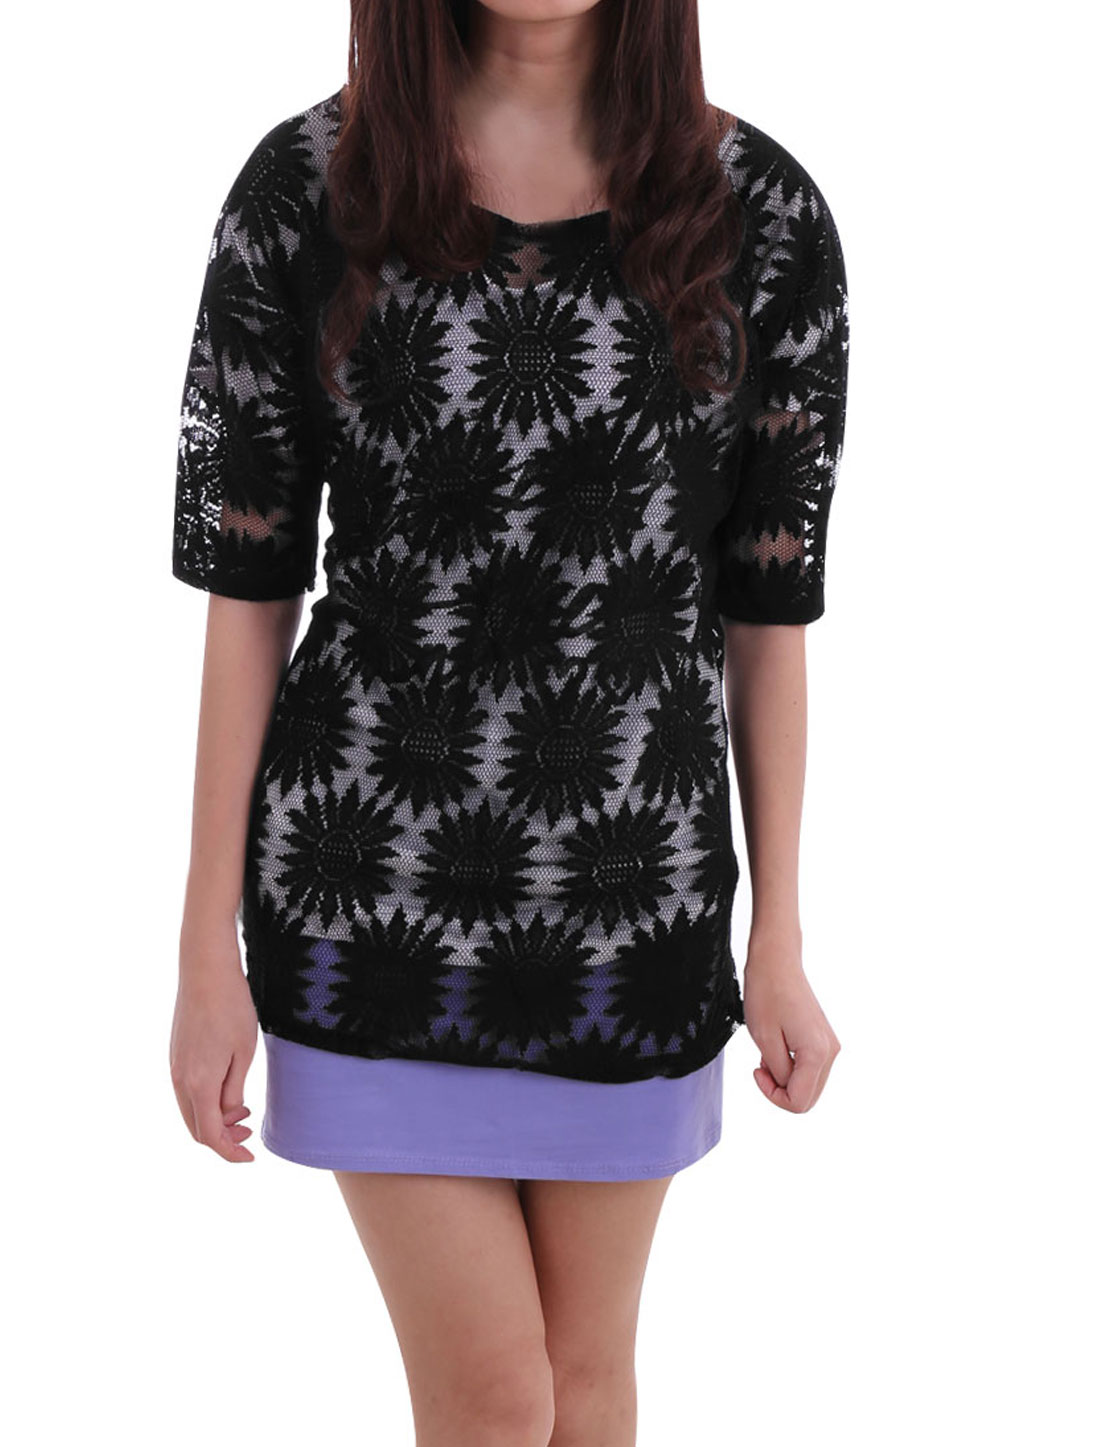 Woman Cover Up Crochet Flower Semi Sheer Dolman Tunic Top Black S